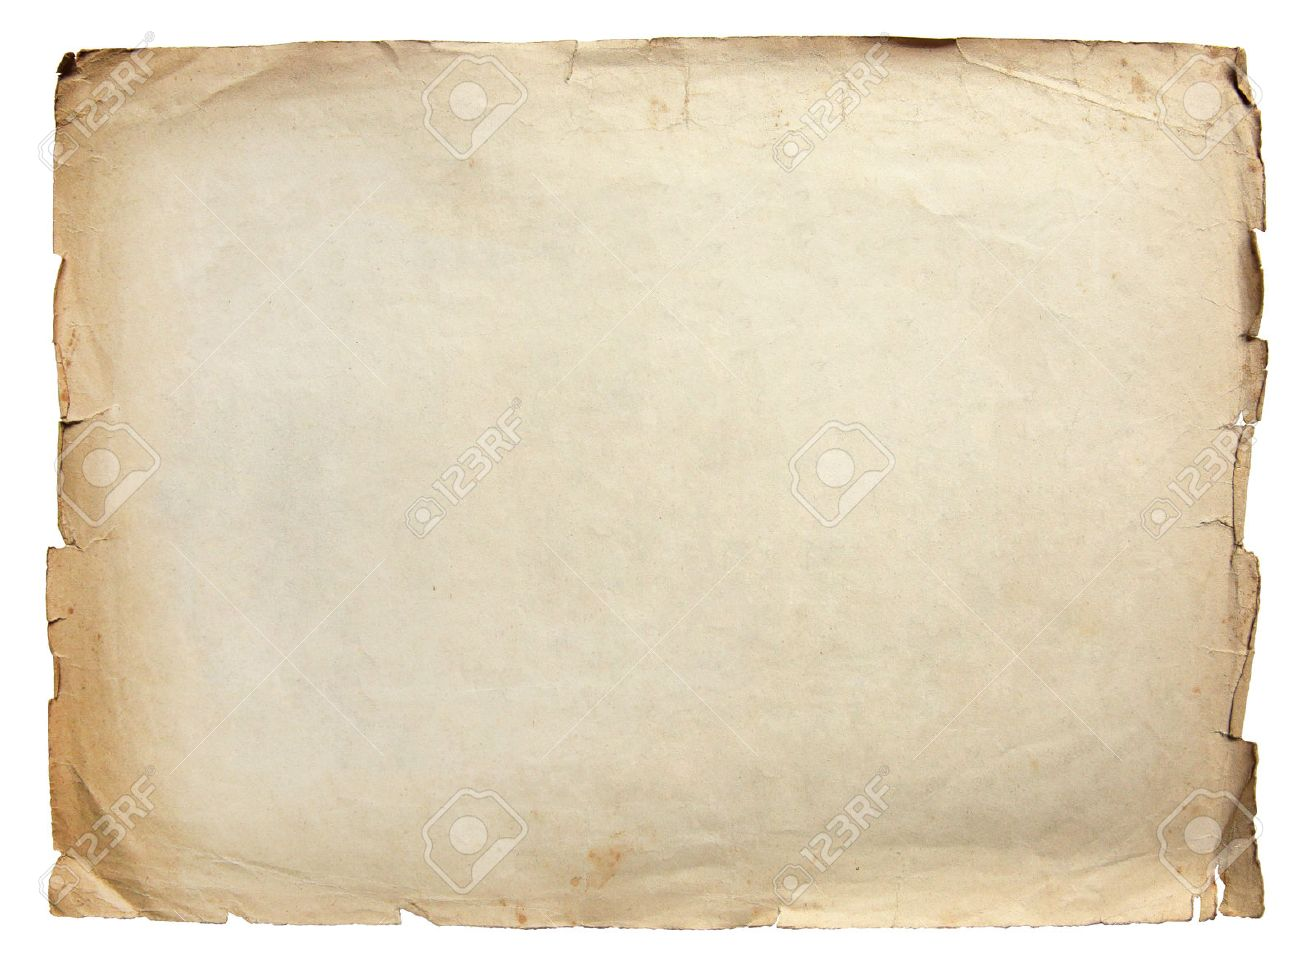 Vintage texture old paper background isolated on white Standard-Bild - 48248690